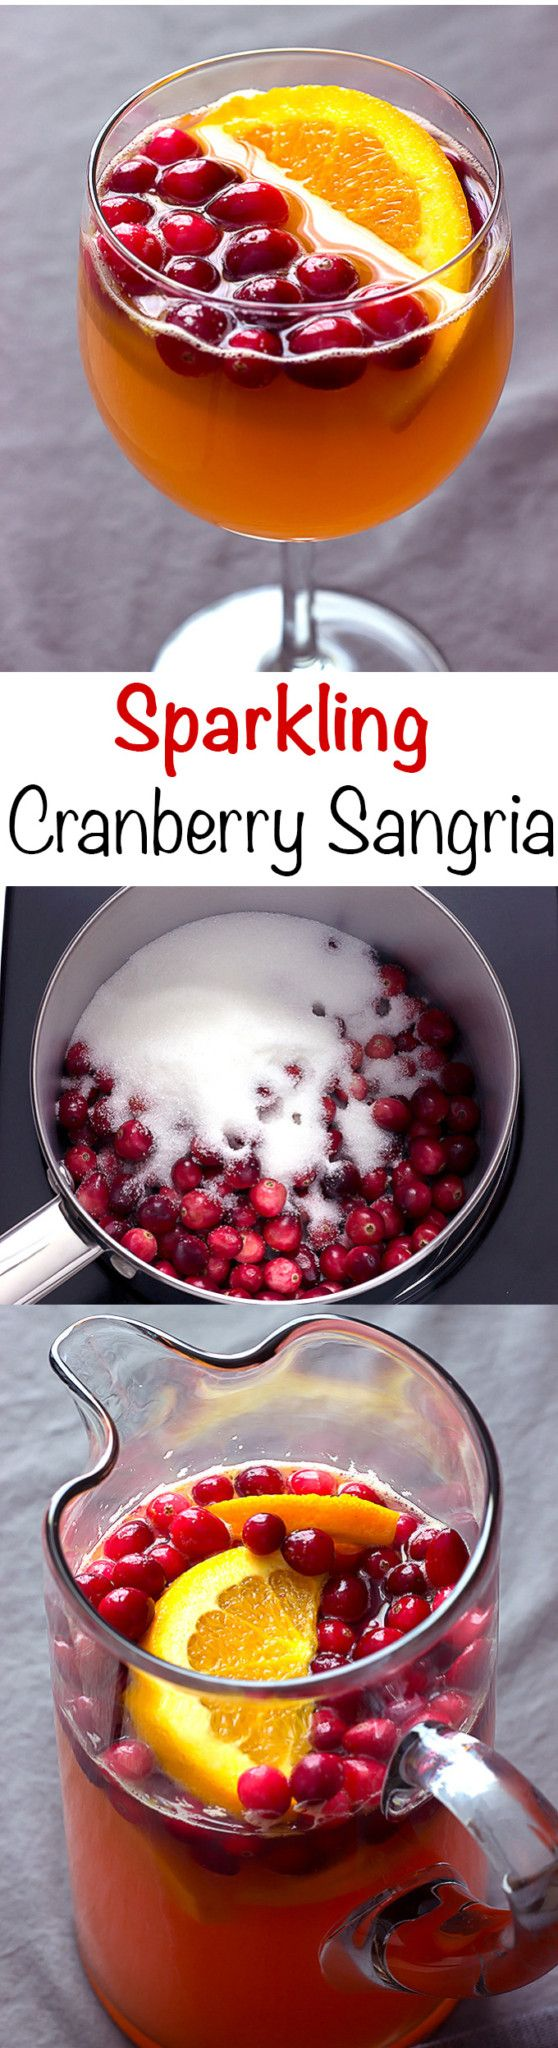 http://tipsalud.com #ad Sparkling Cranberry Sangria recipe - perfect cocktail for the holidays.  #CookWithCranberries @USCranberries